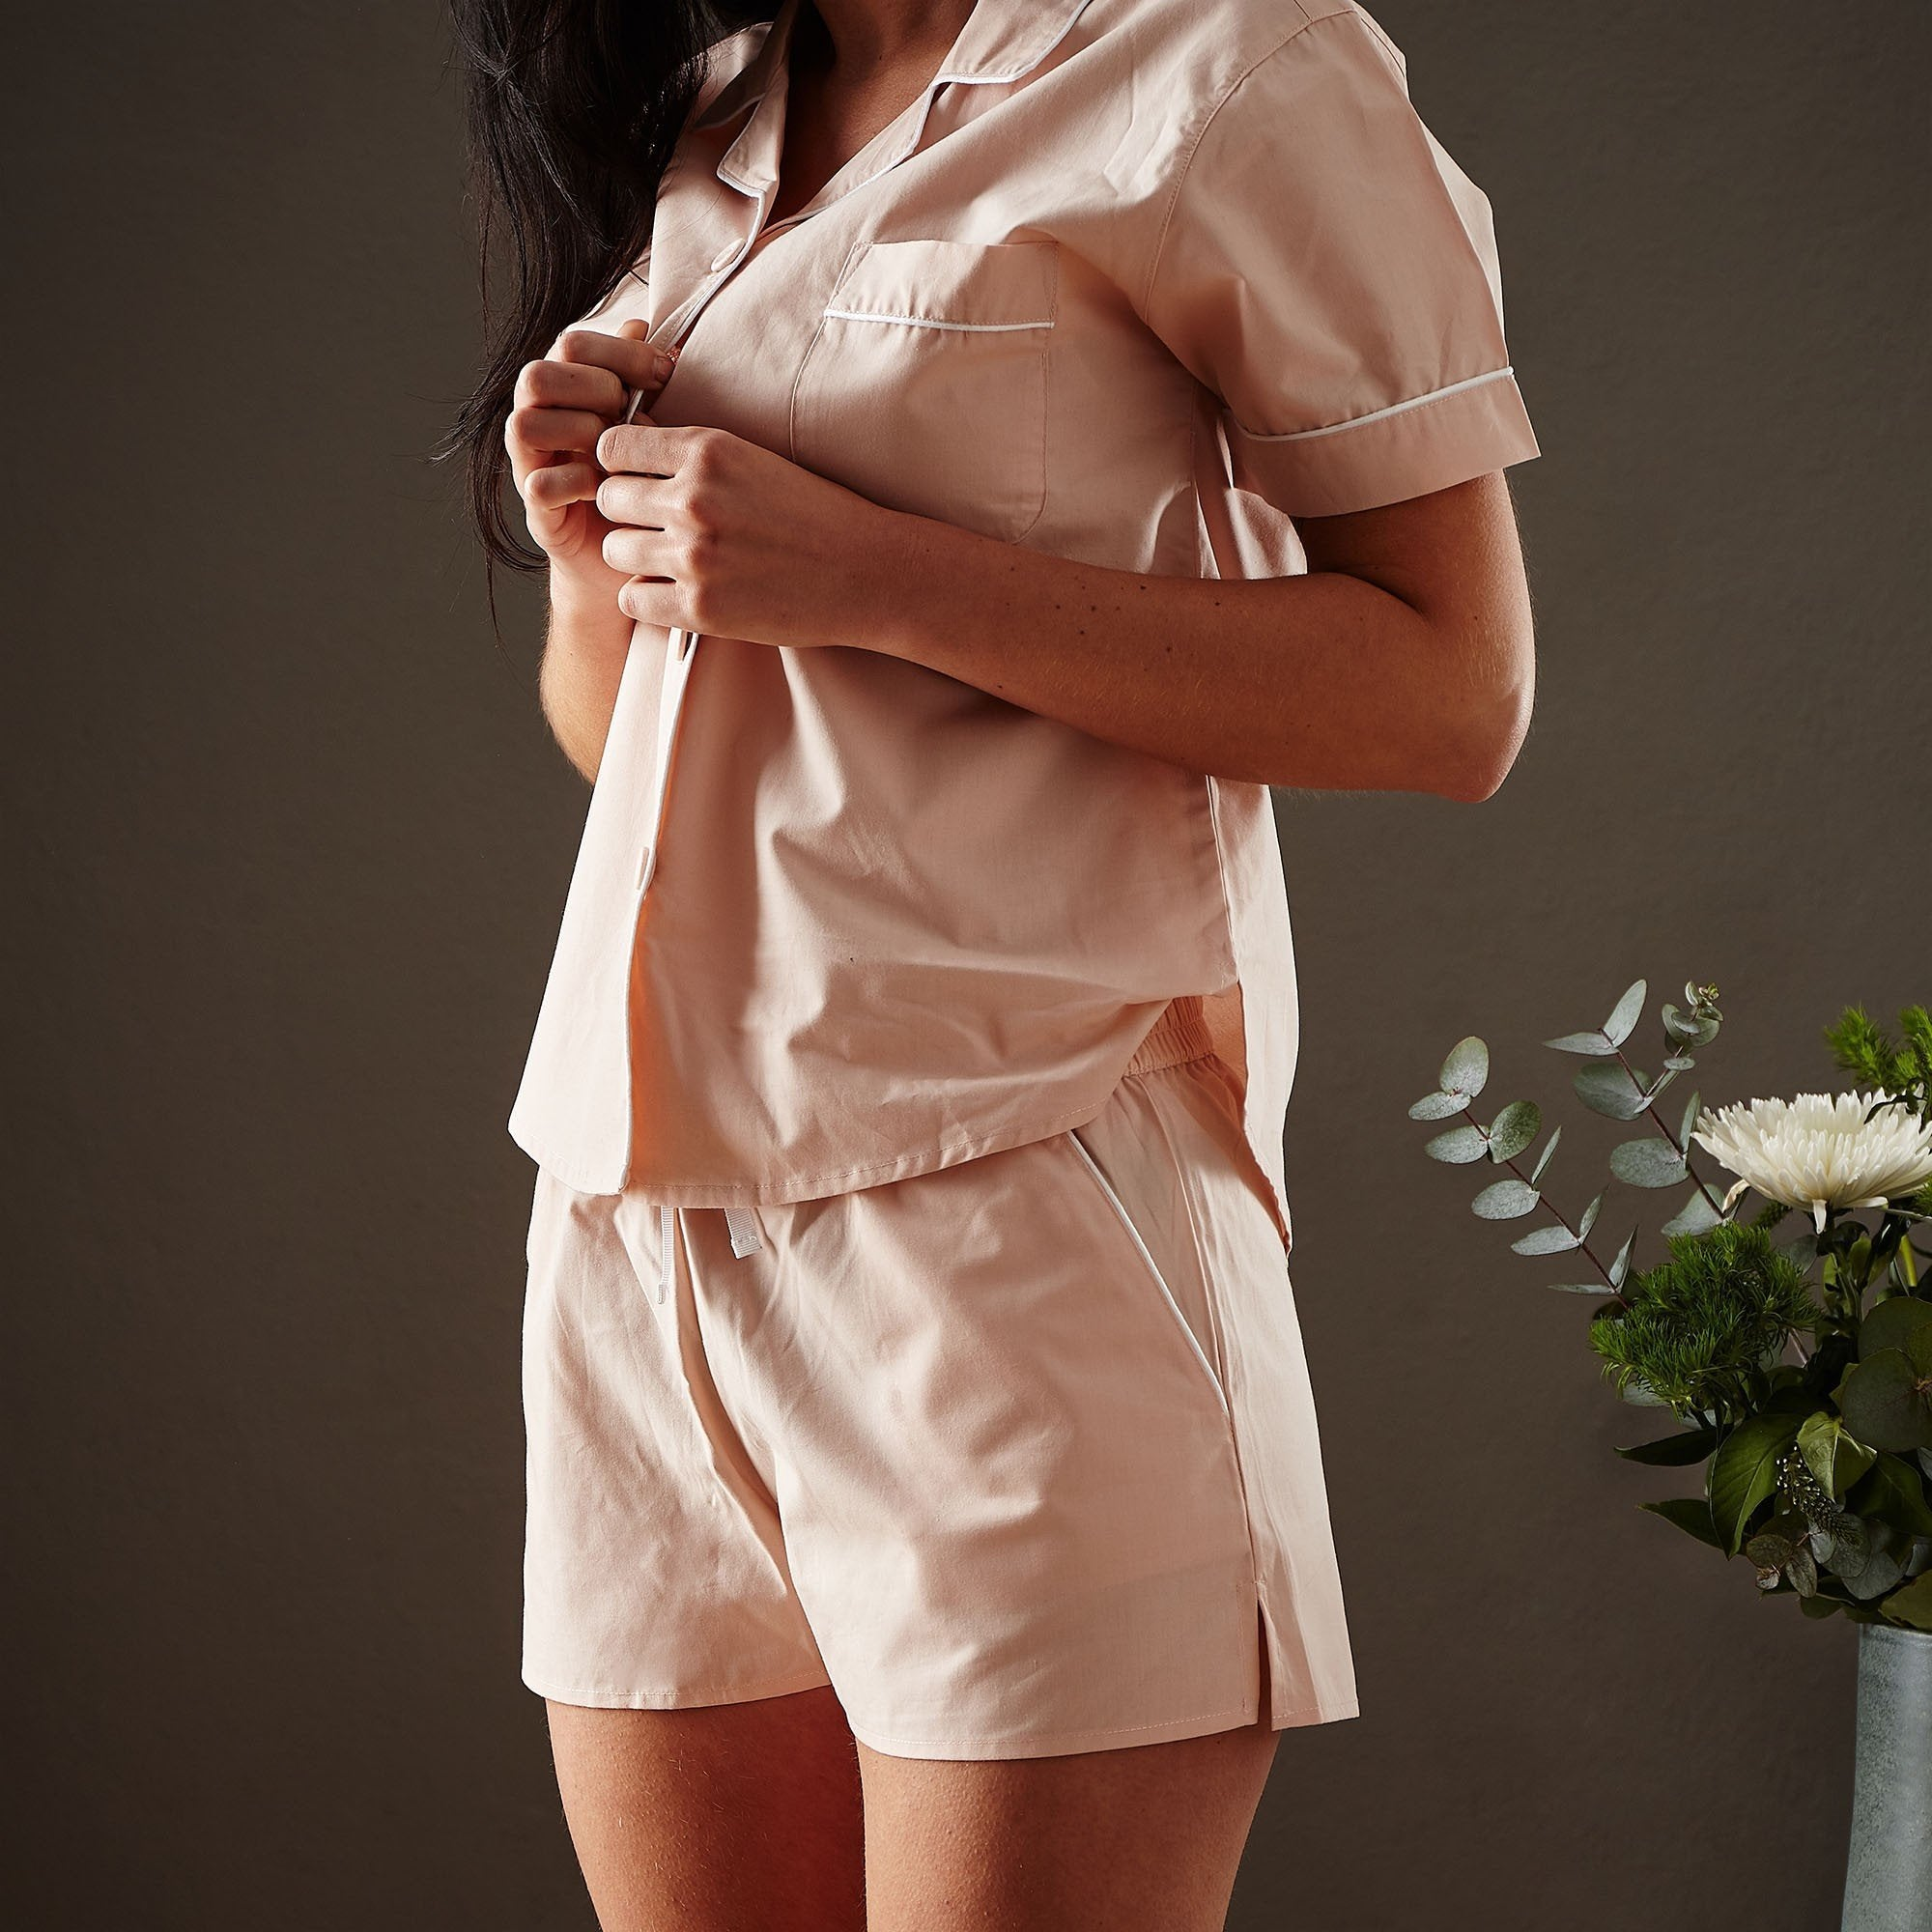 Light pink & White Alva Pyjama | Home & Living inspiration | URBANARA